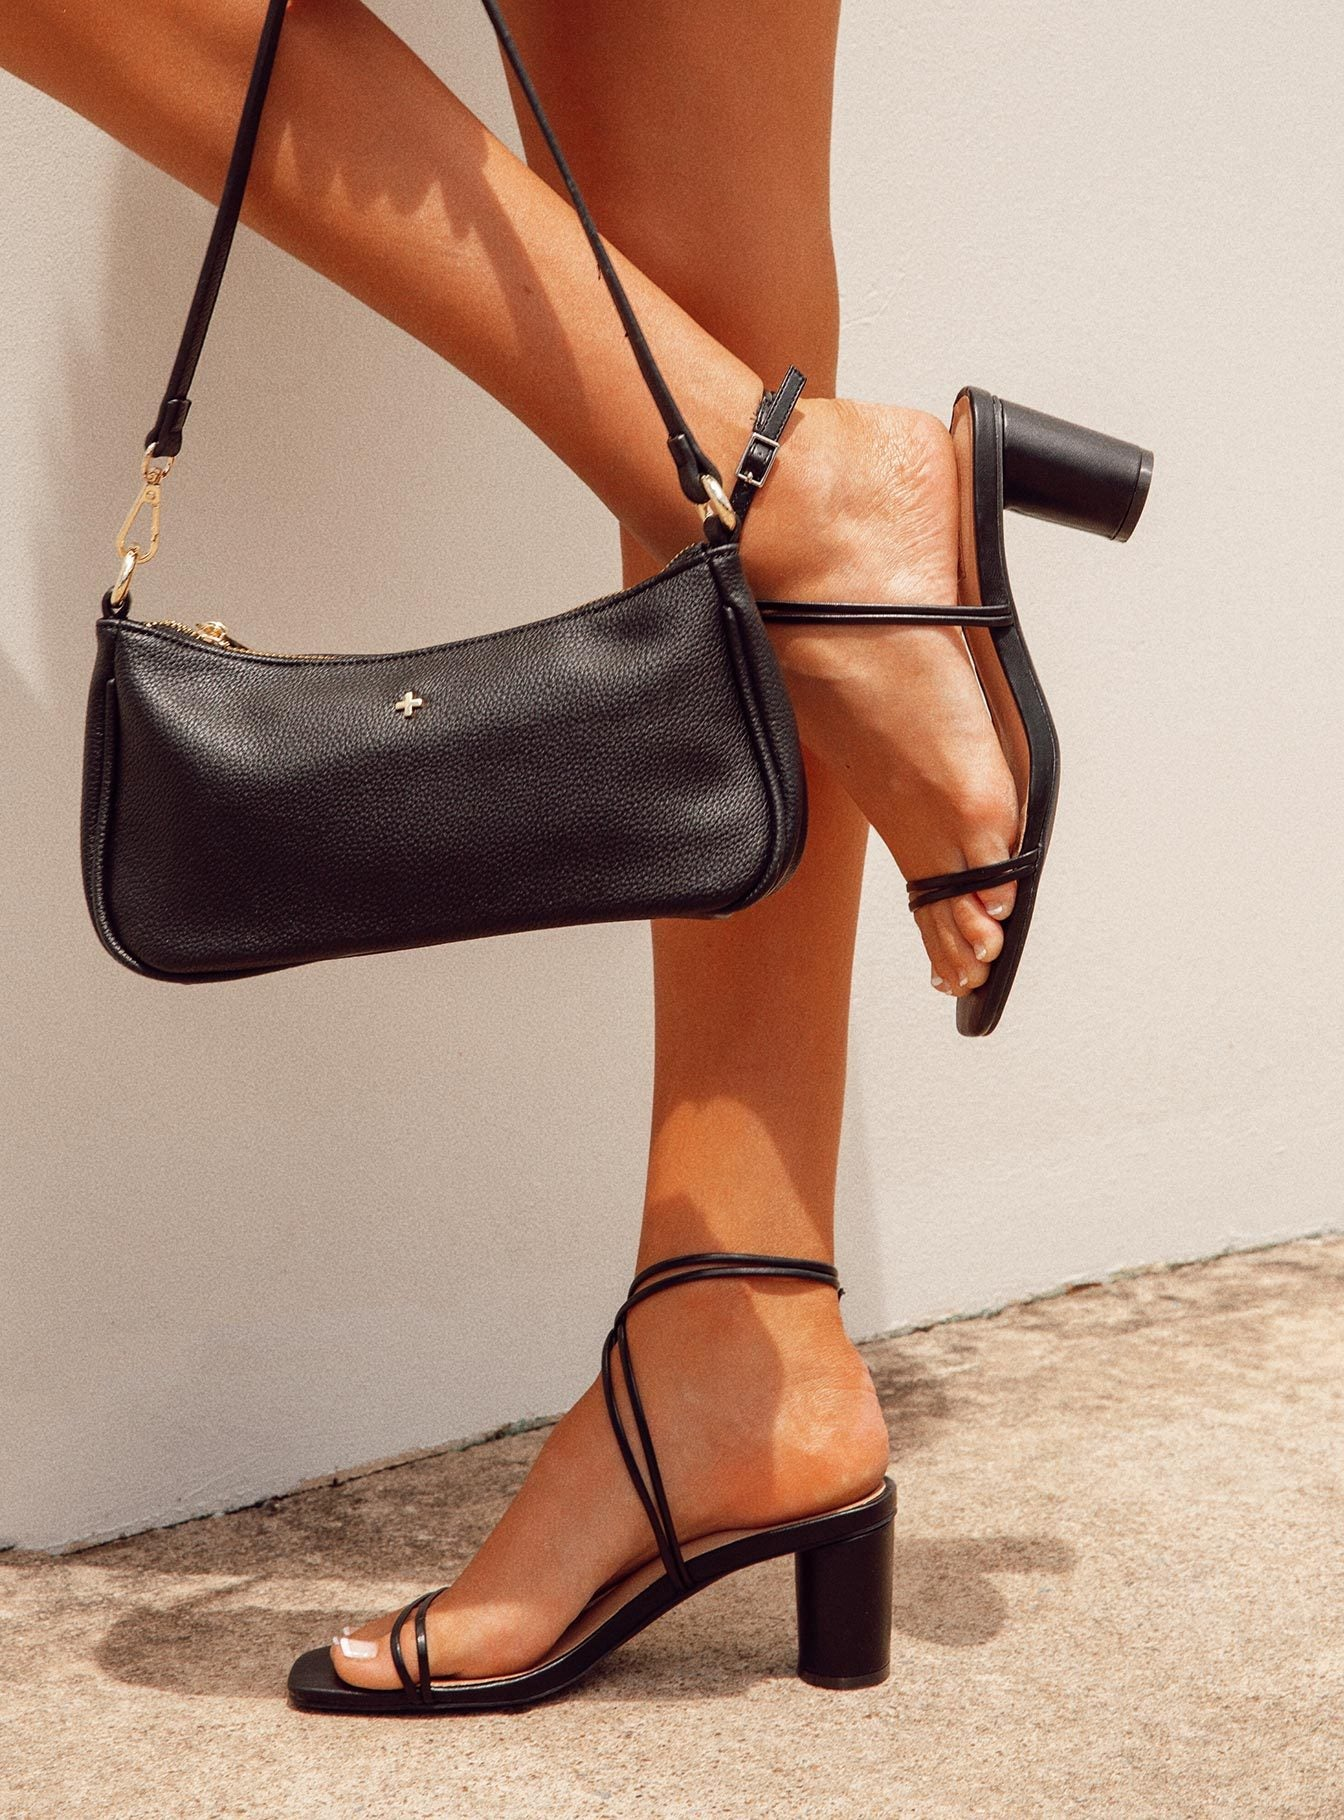 Therapy Stunna Black Heels